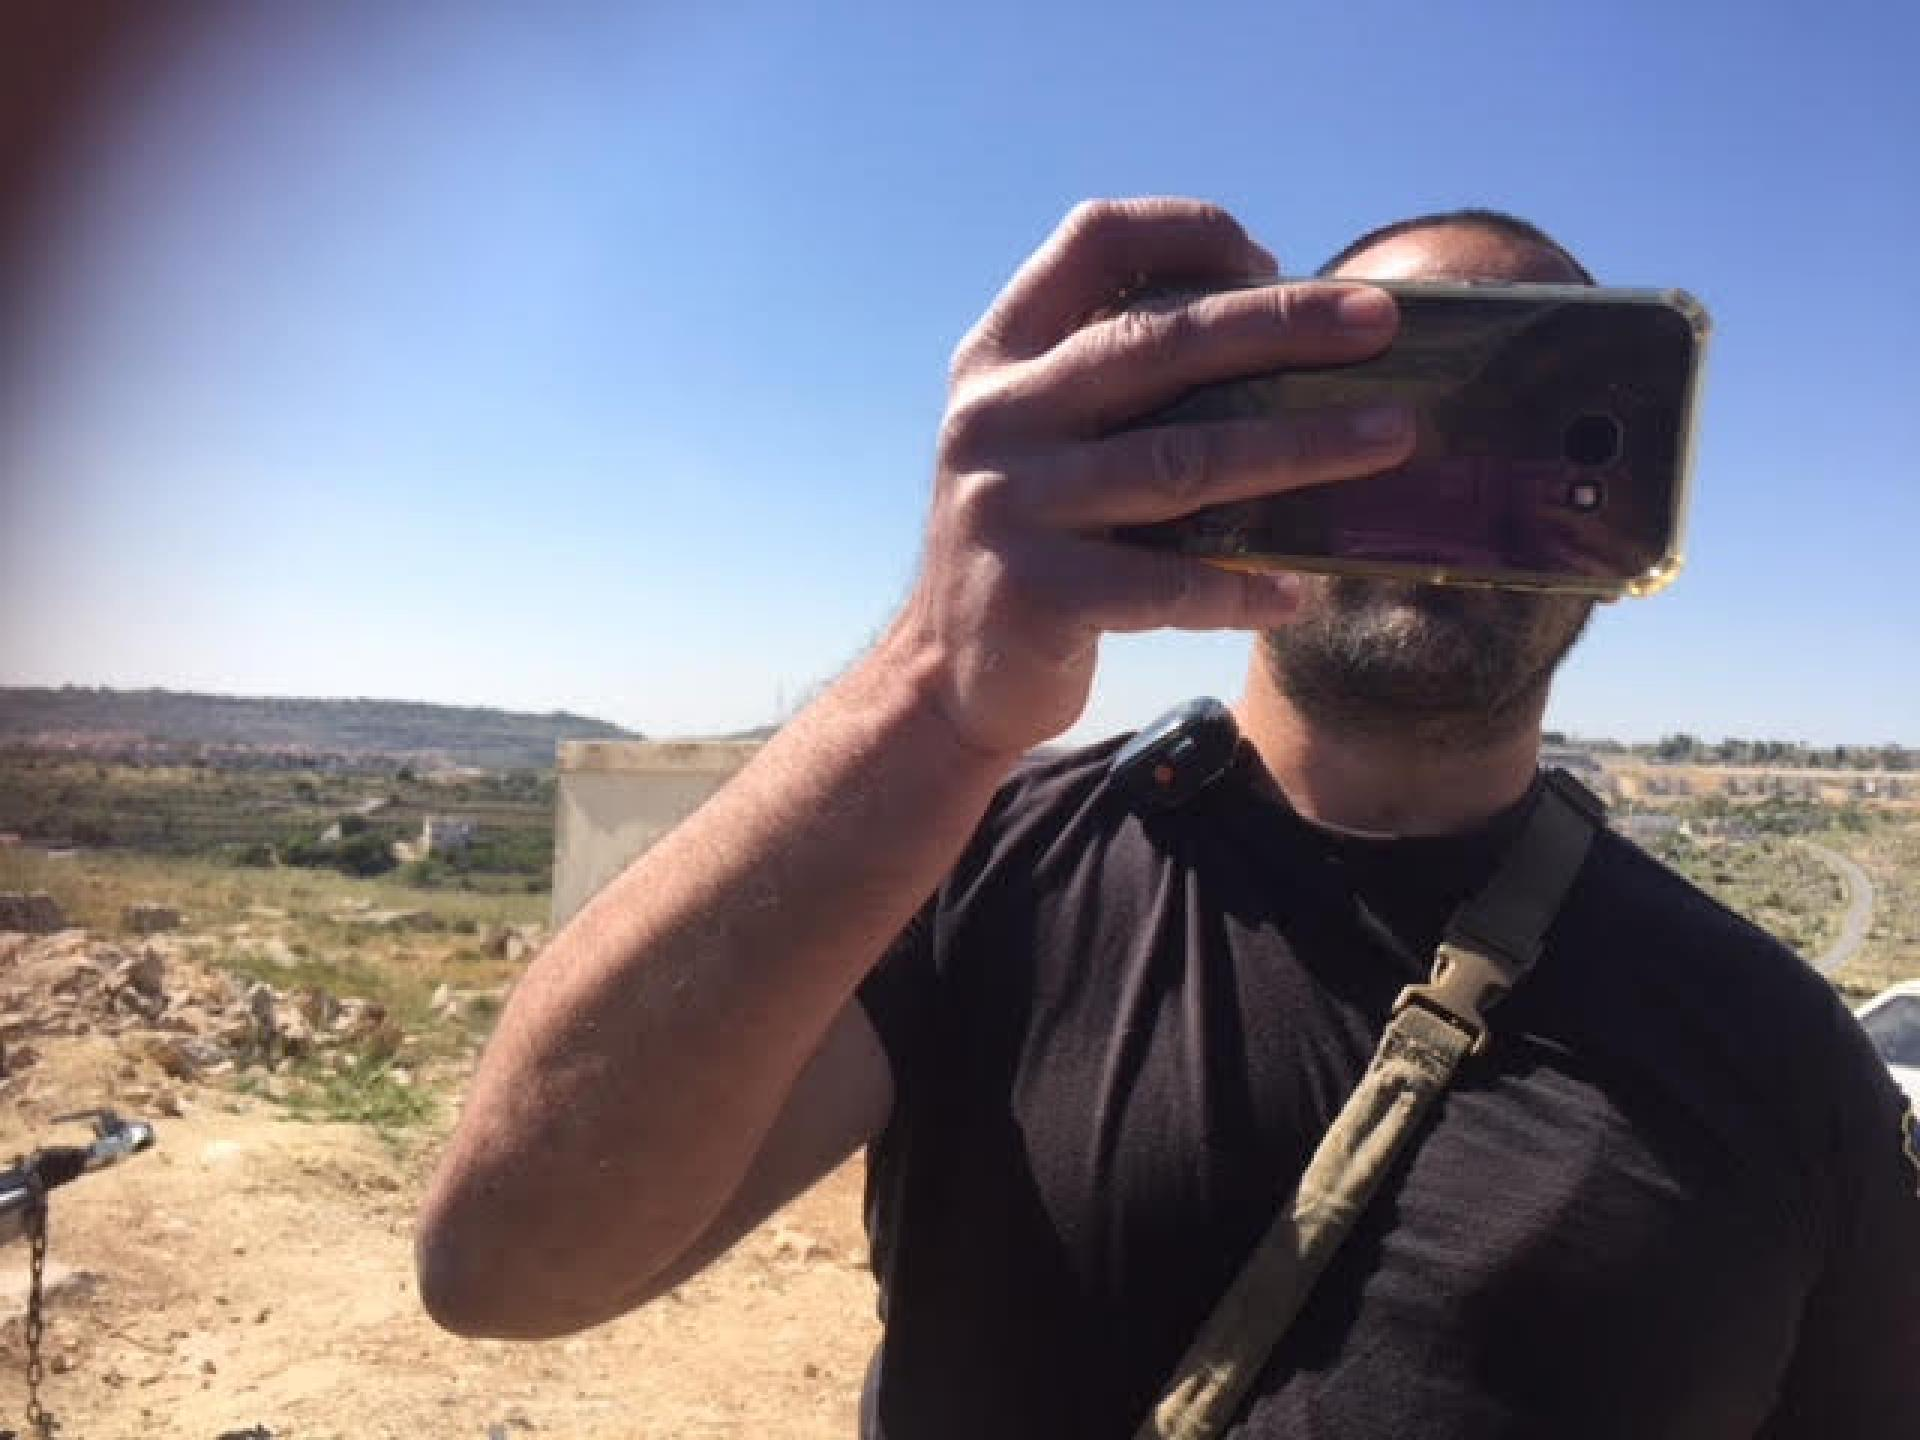 We ran into Moshe, Kiryat Arba's security official. He officiated and took photos, we photographed right back